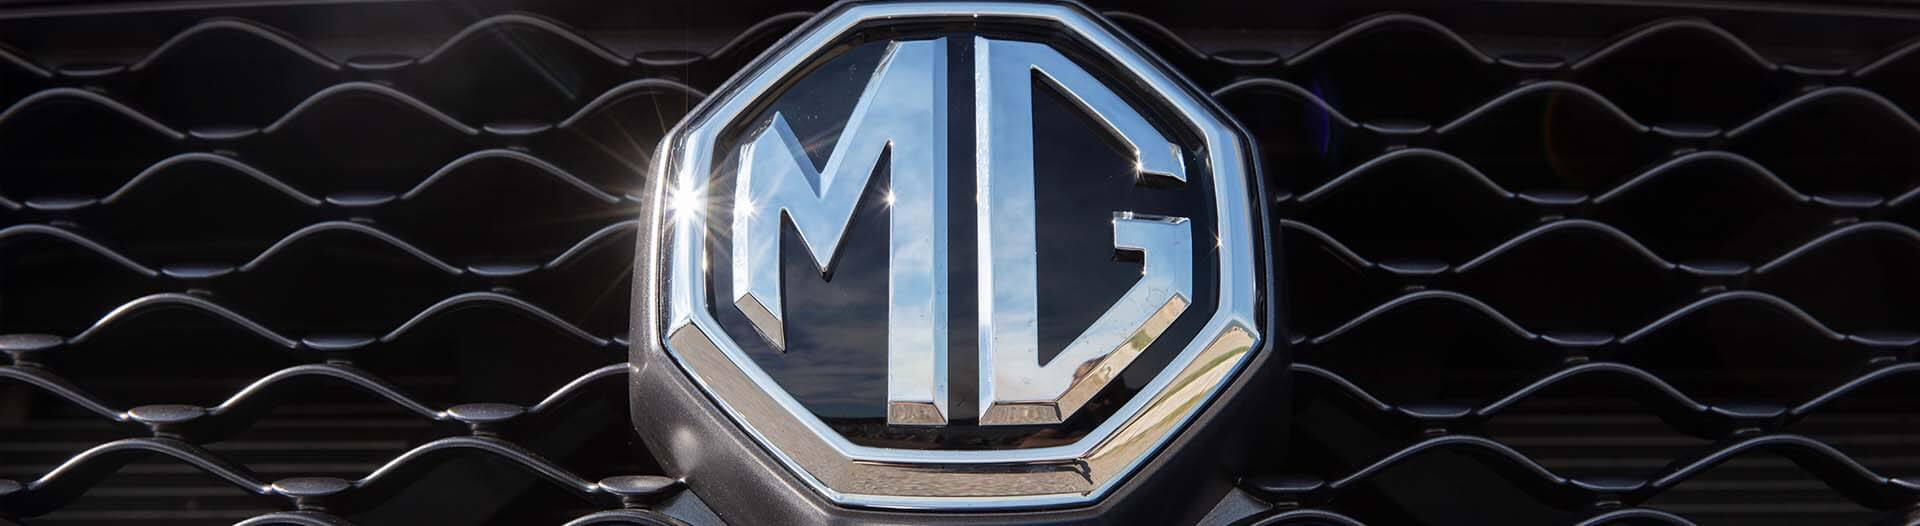 MG MG3 front badge